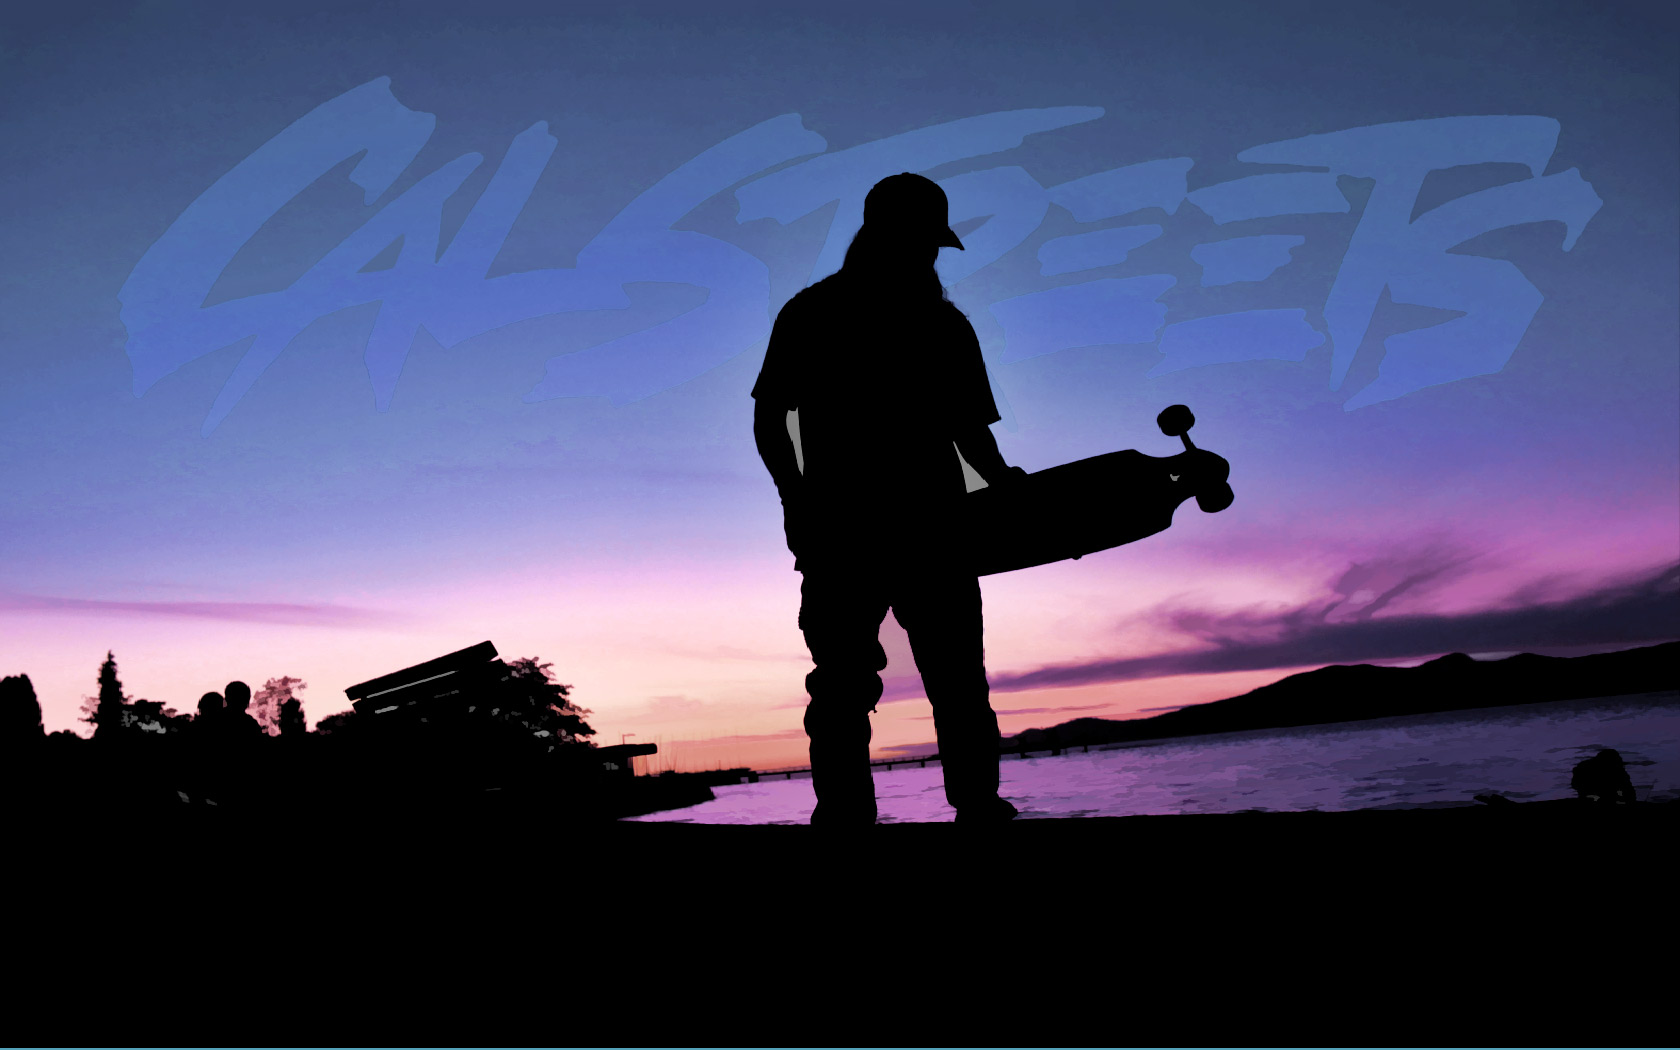 Skateboarding Wallpapers thatll float your boat Extreme Sports Blog 1680x1050